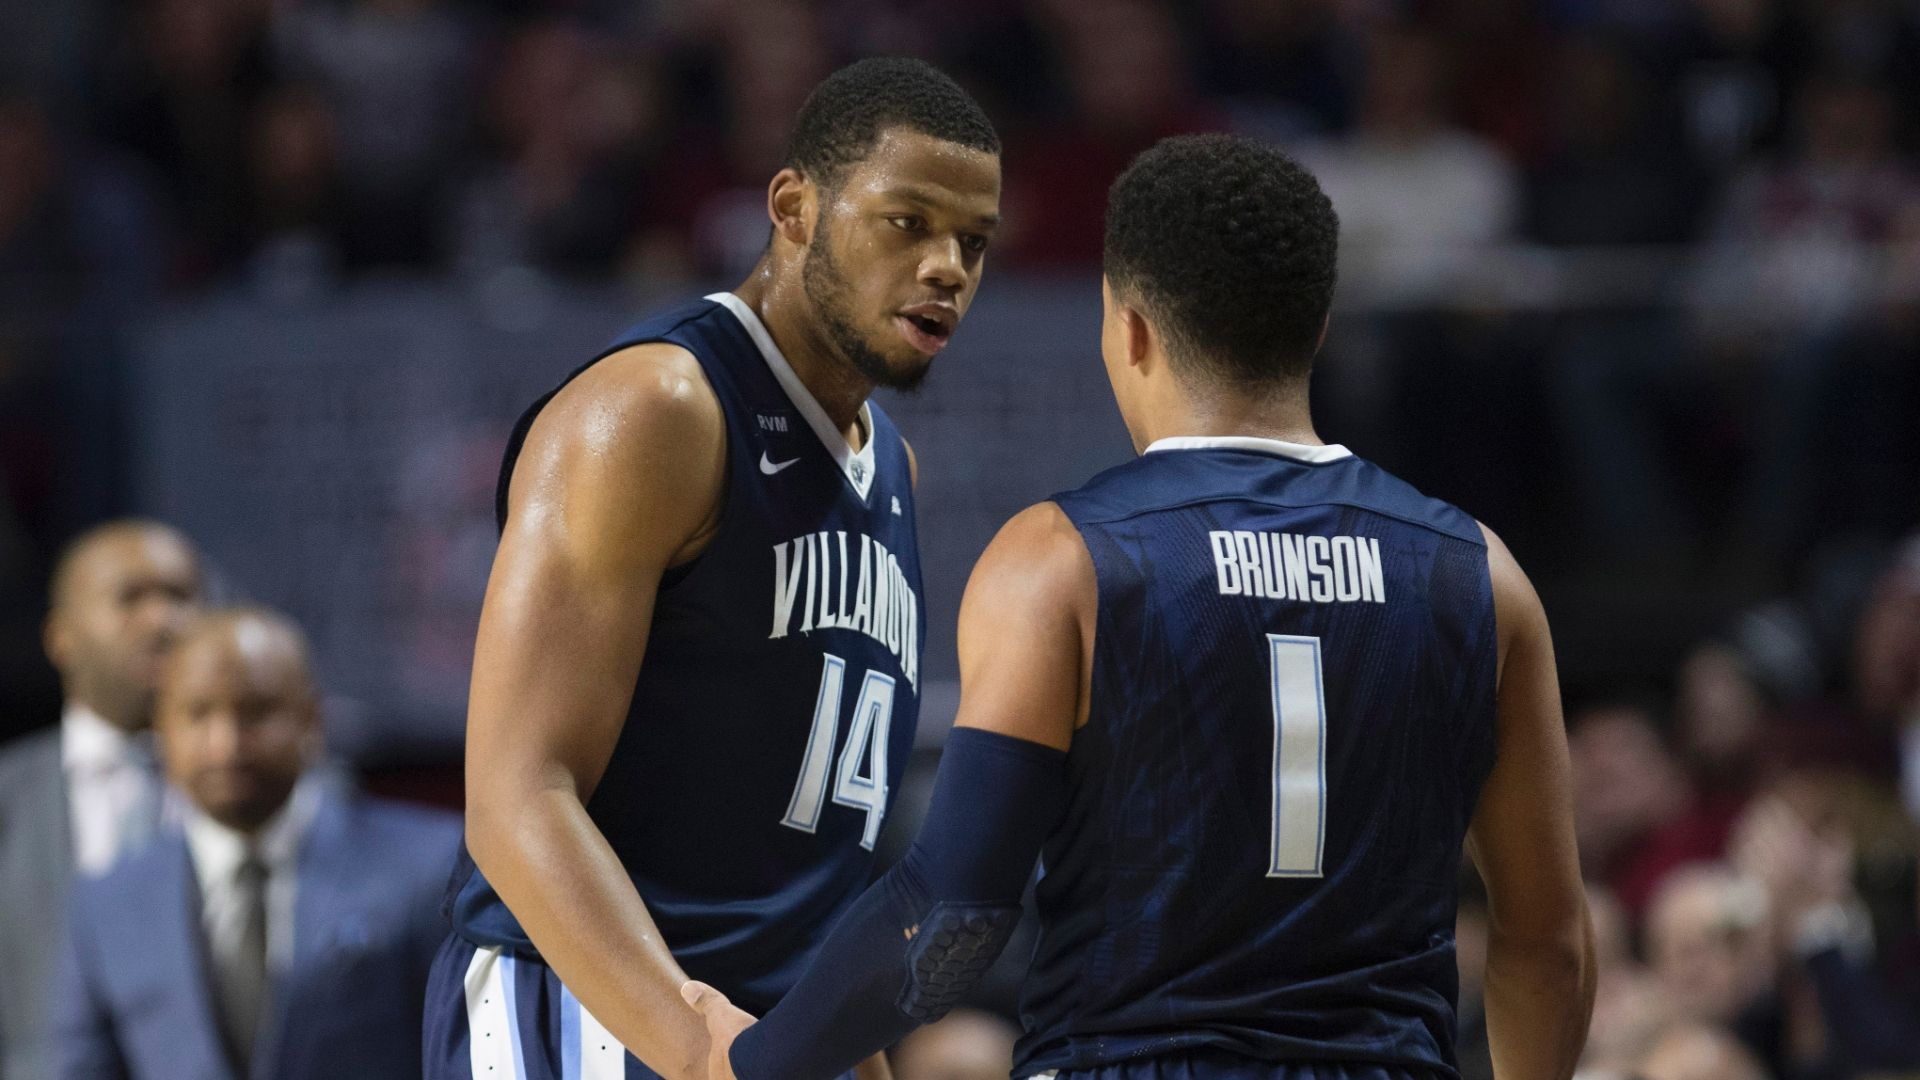 Brunson, Spellman shine for Nova